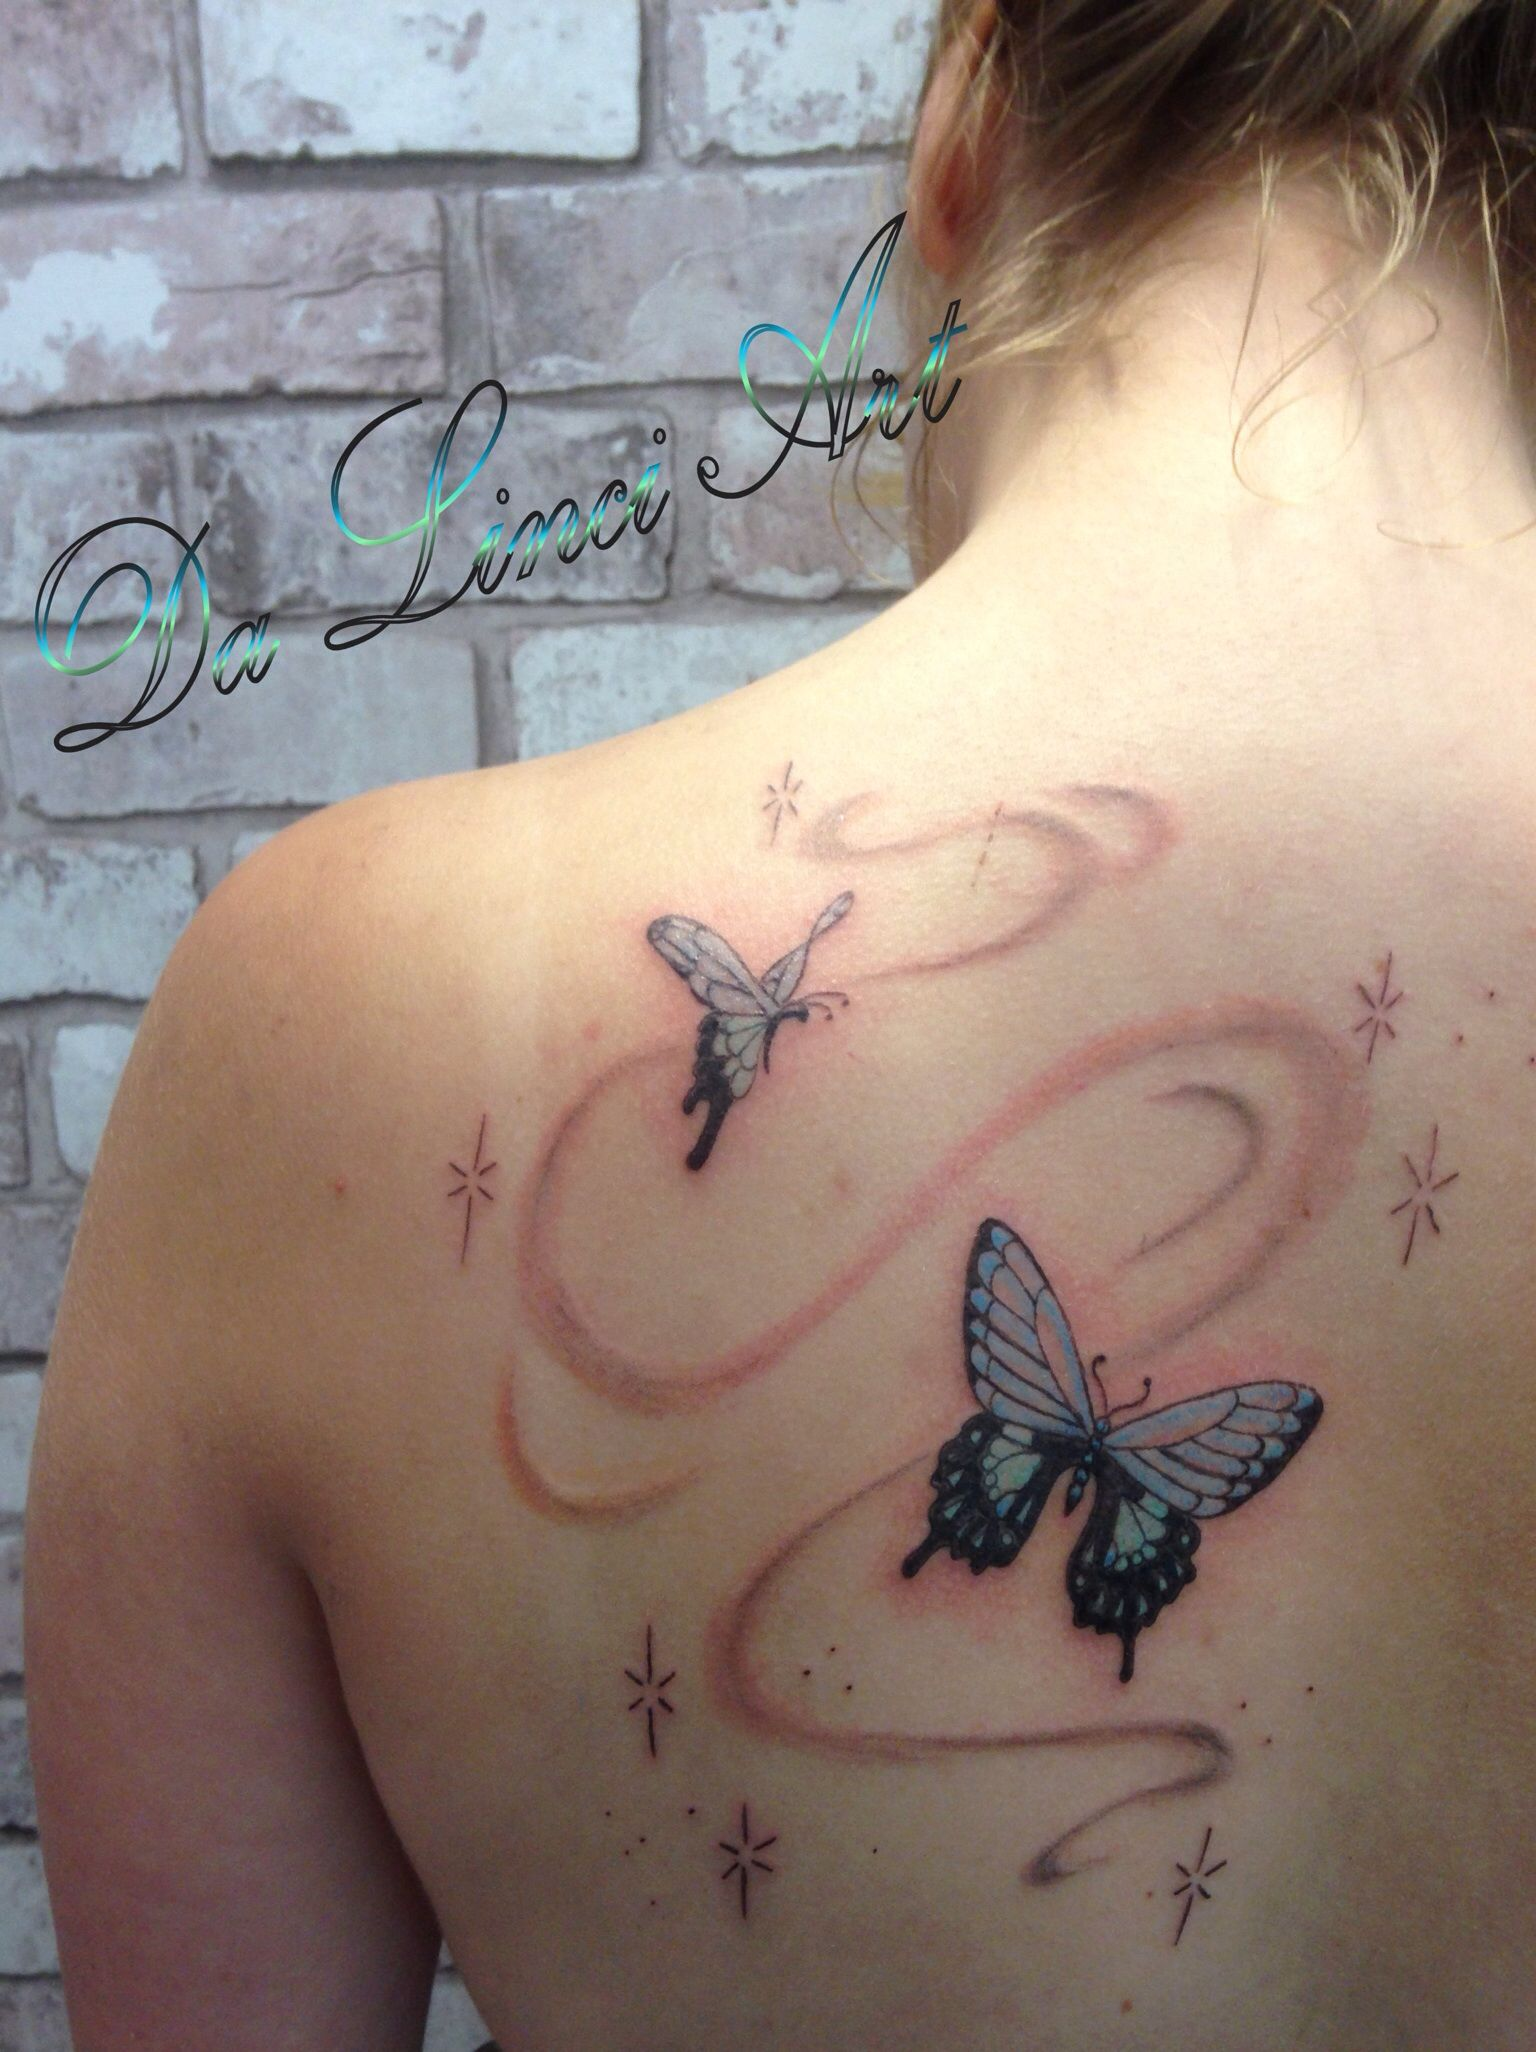 The o jays butterfly tattoos and clothes on pinterest - Butterfly Tattoo Made By Linda Da Linci Zwijndrecht The Netherlands